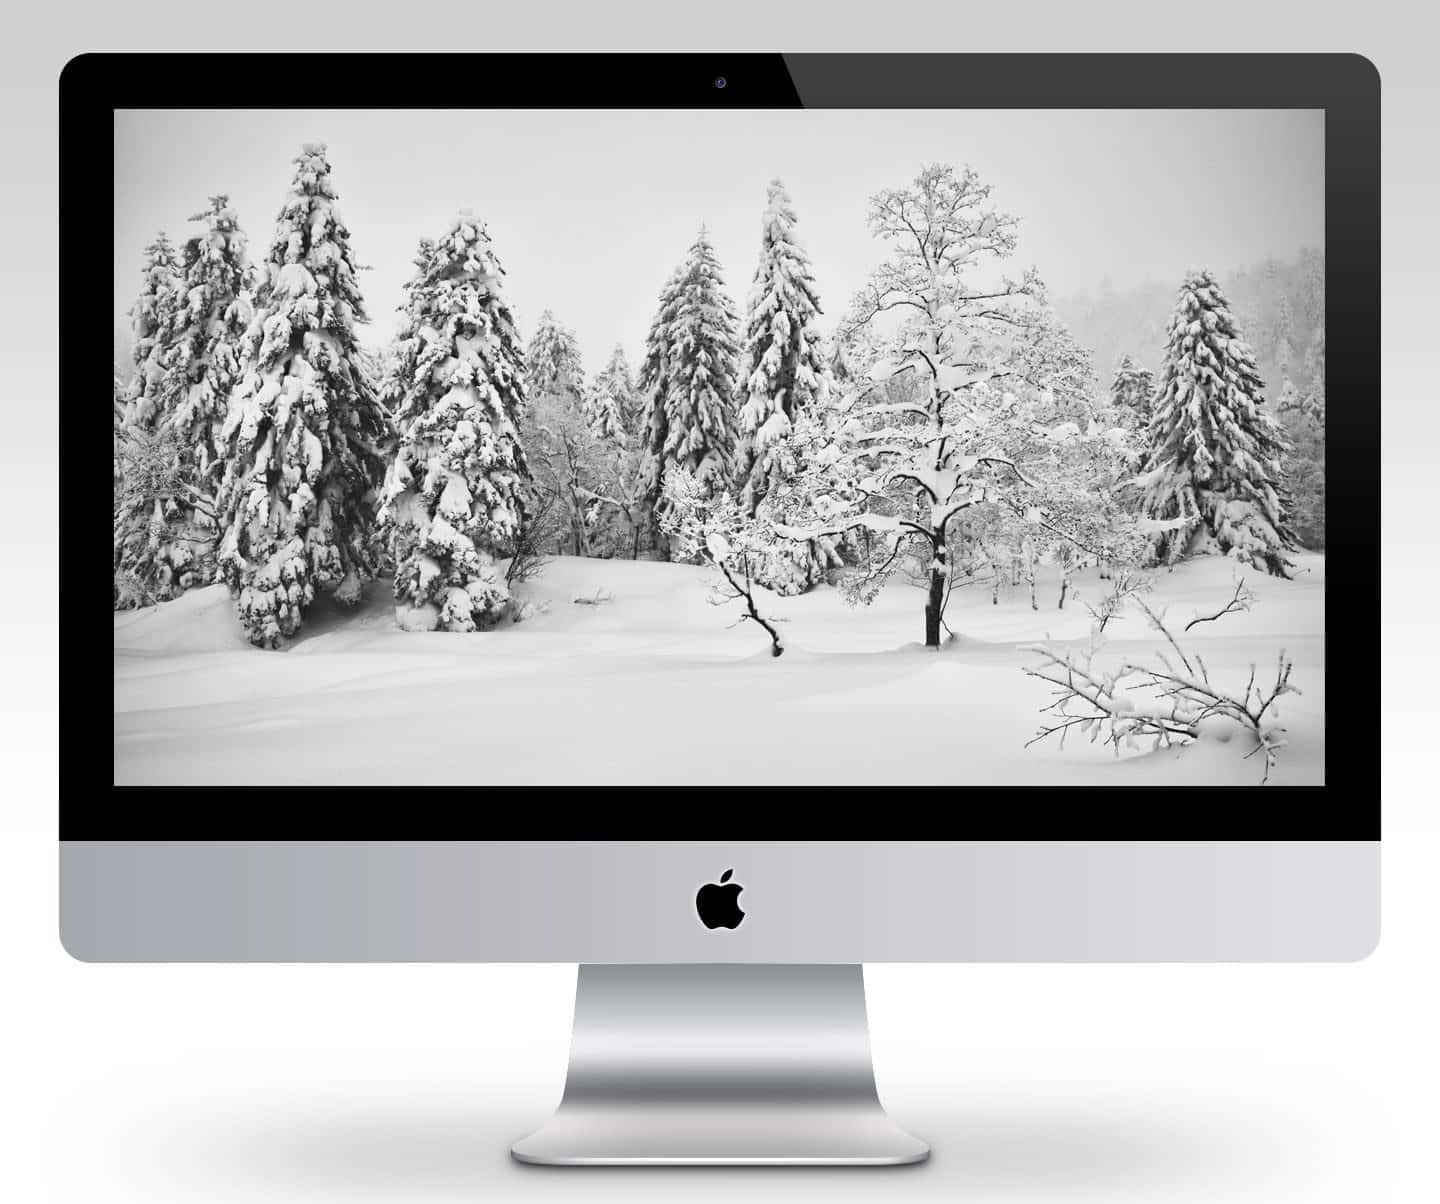 Mount Asahi Winter Wonderland Wallpaper Mockup